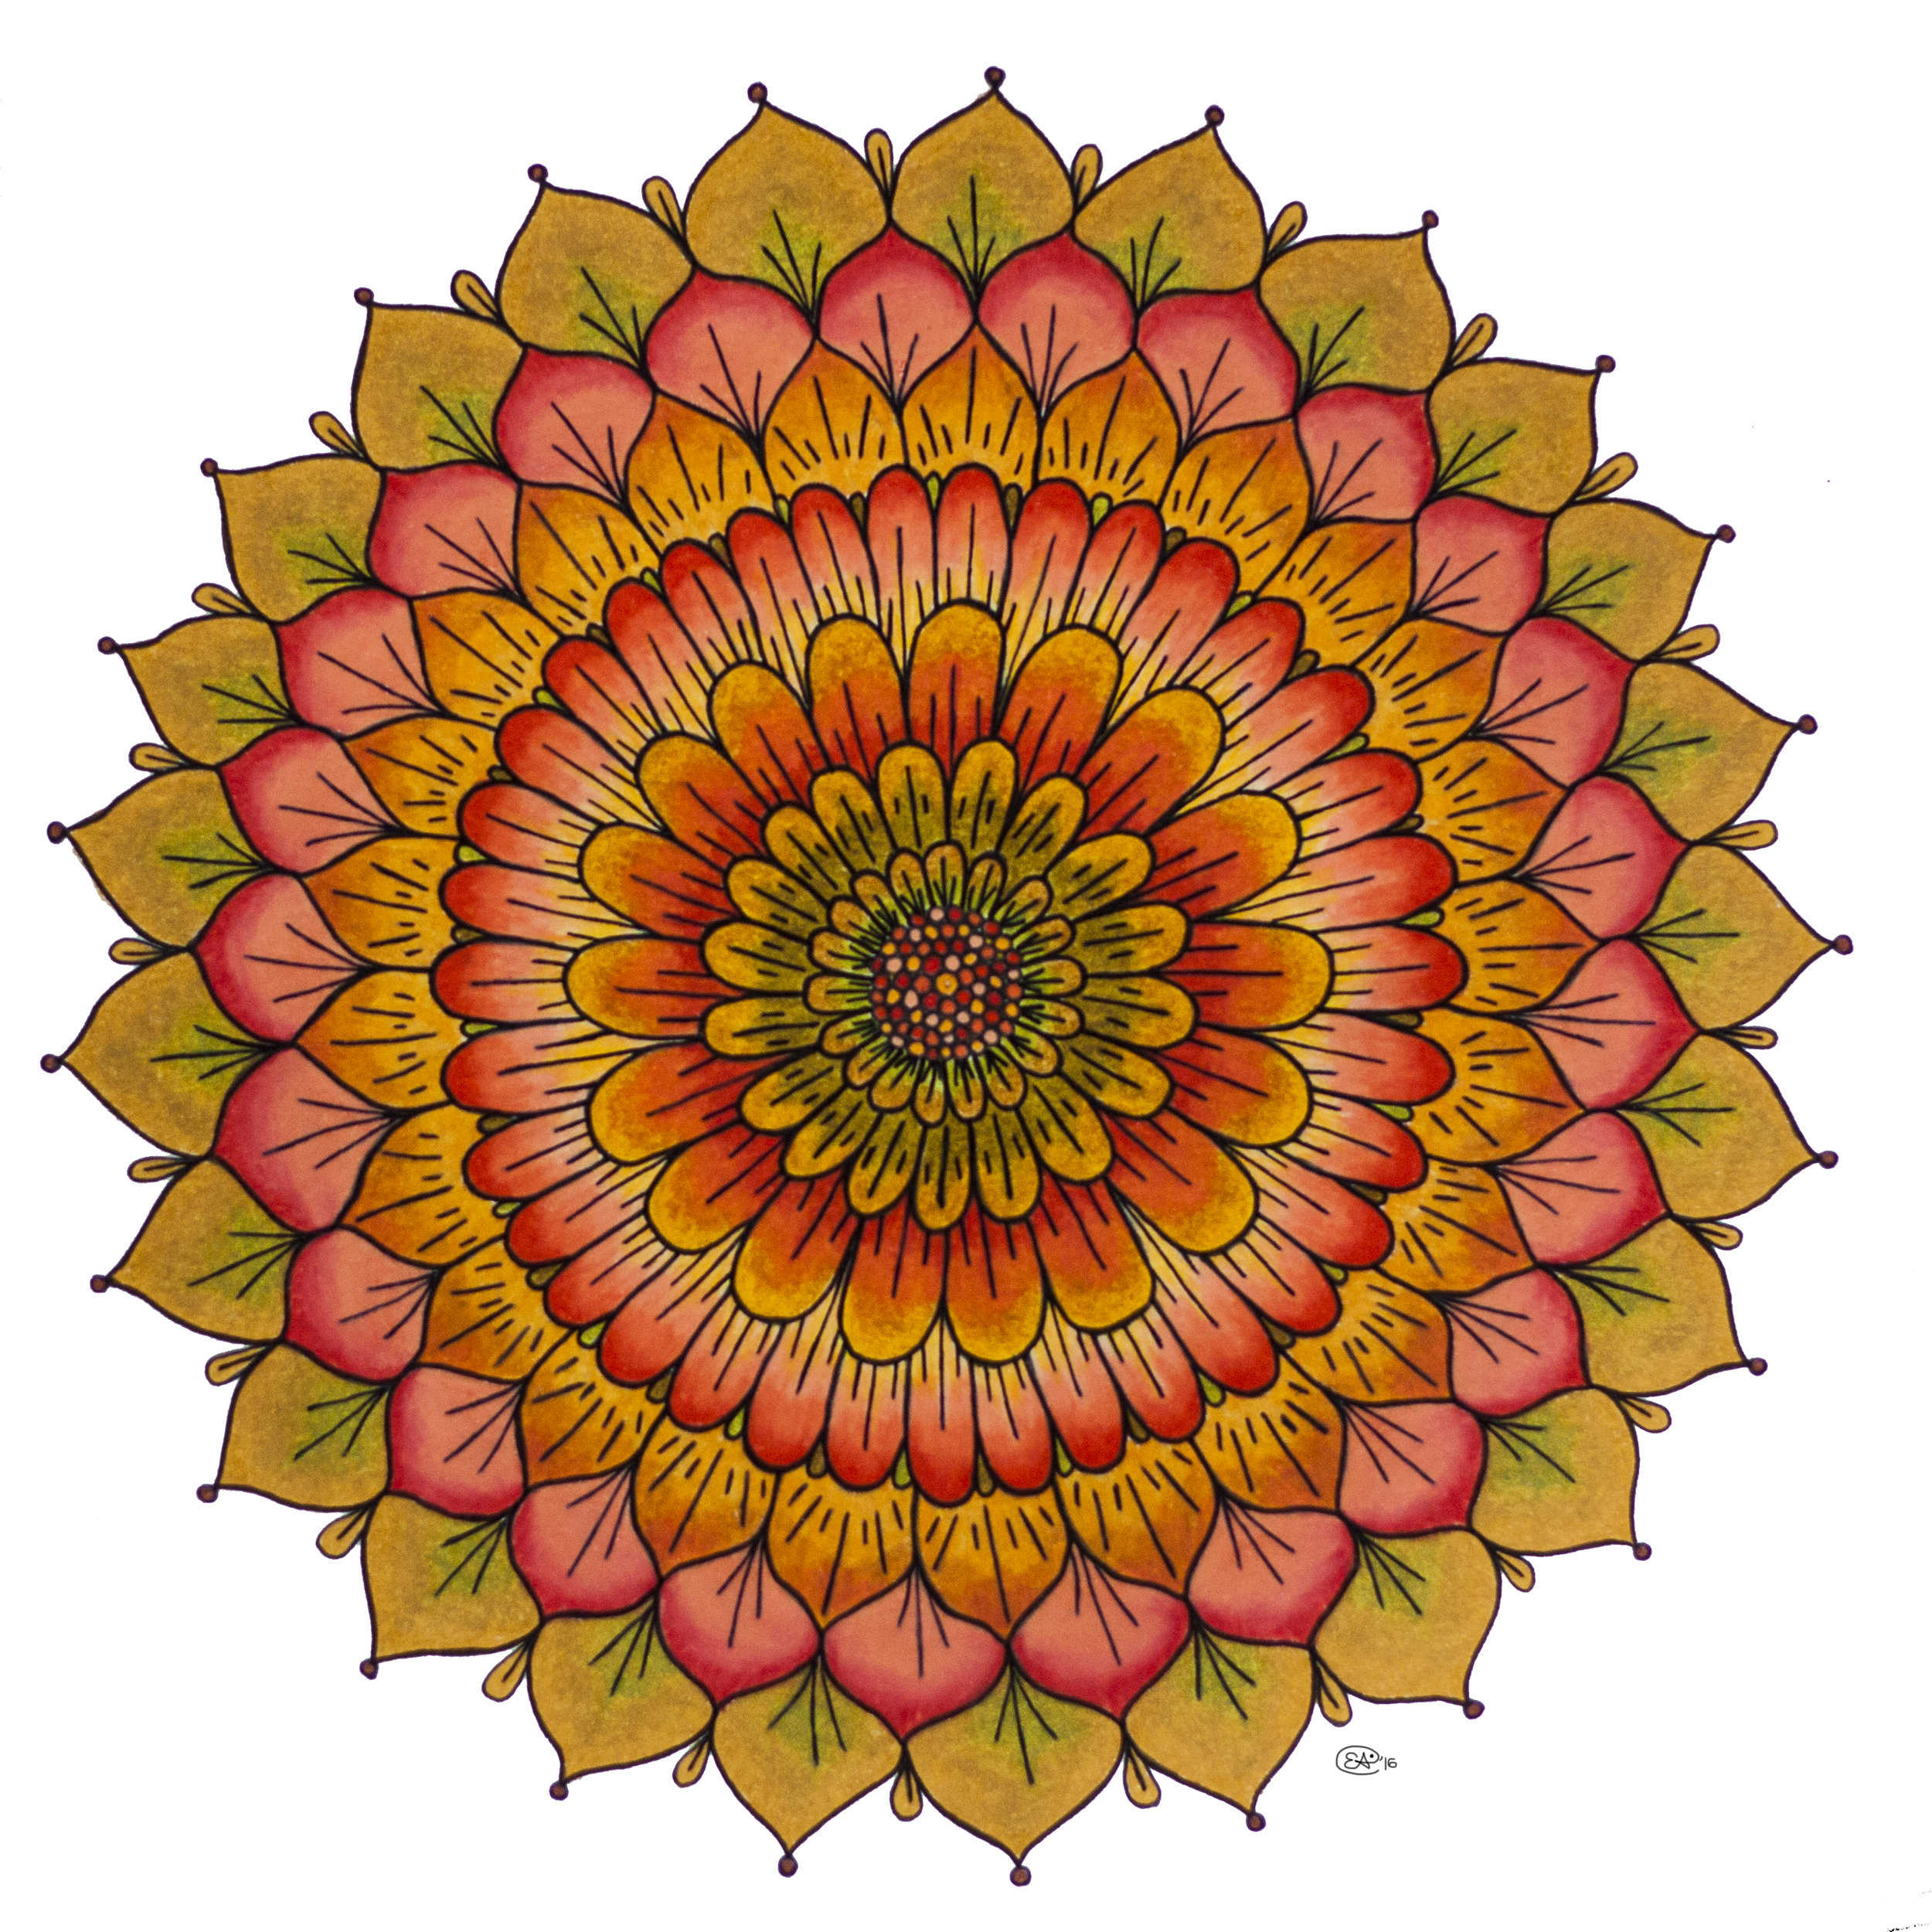 Sunflowermandala.jpg